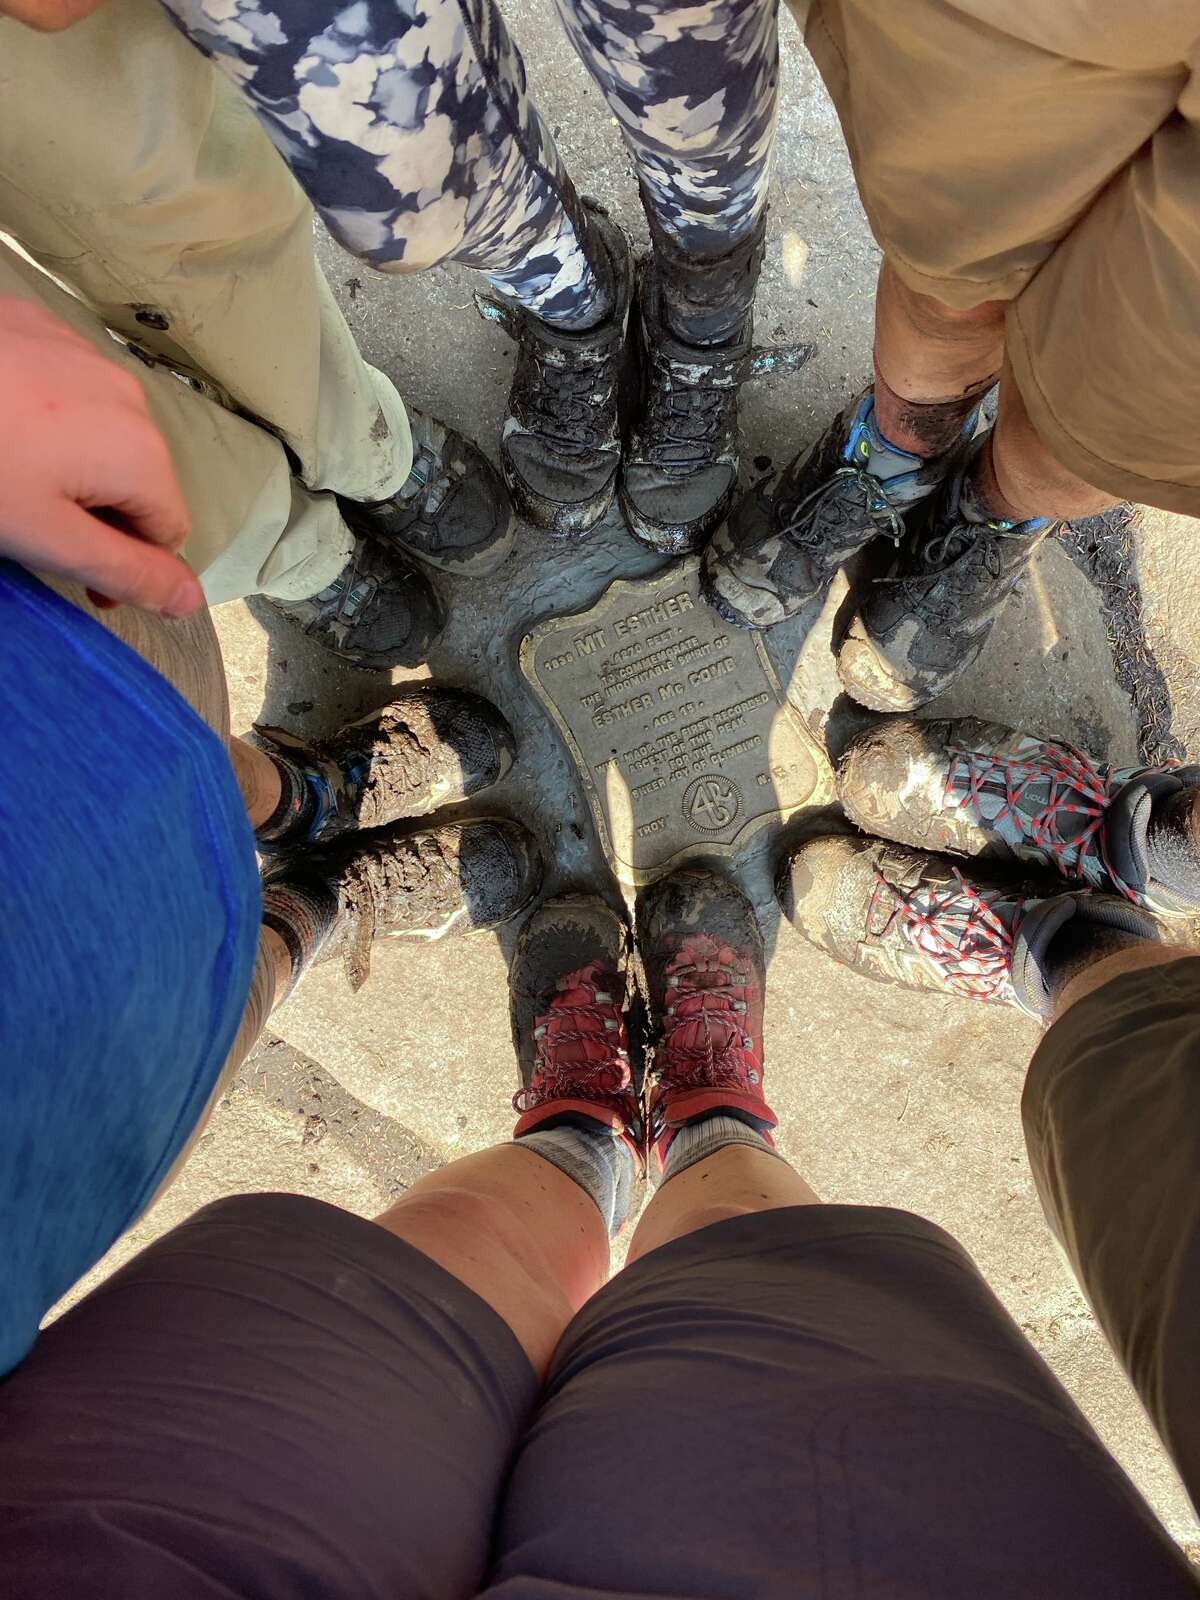 Hiking is more fun with friends. Six pairs of boots display their muddy glory on the summit of Esther Mountain, where a plaque commemorates the first climb of the mountain by 15-year-old Esther McComb.